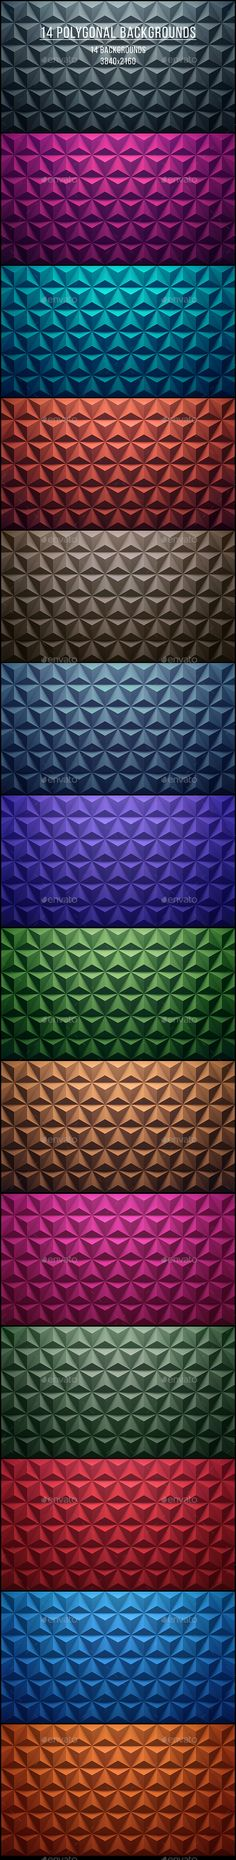 14 Polygonal Backgrounds. Download here: http://graphicriver.net/item/14-polygonal-backgrounds/15023644?ref=ksioks